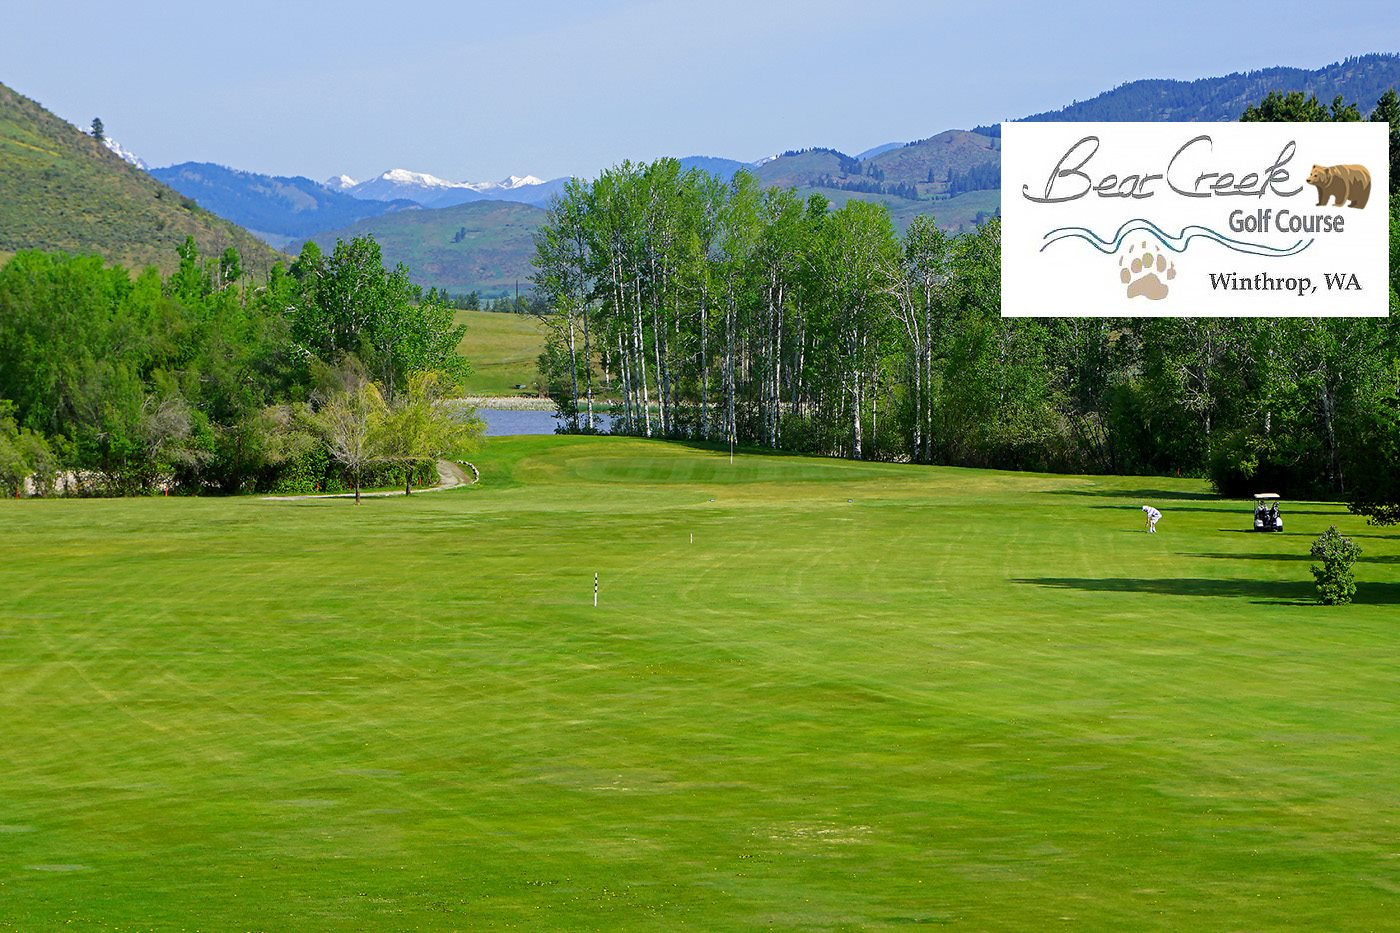 lush green golf course with mountains in the background